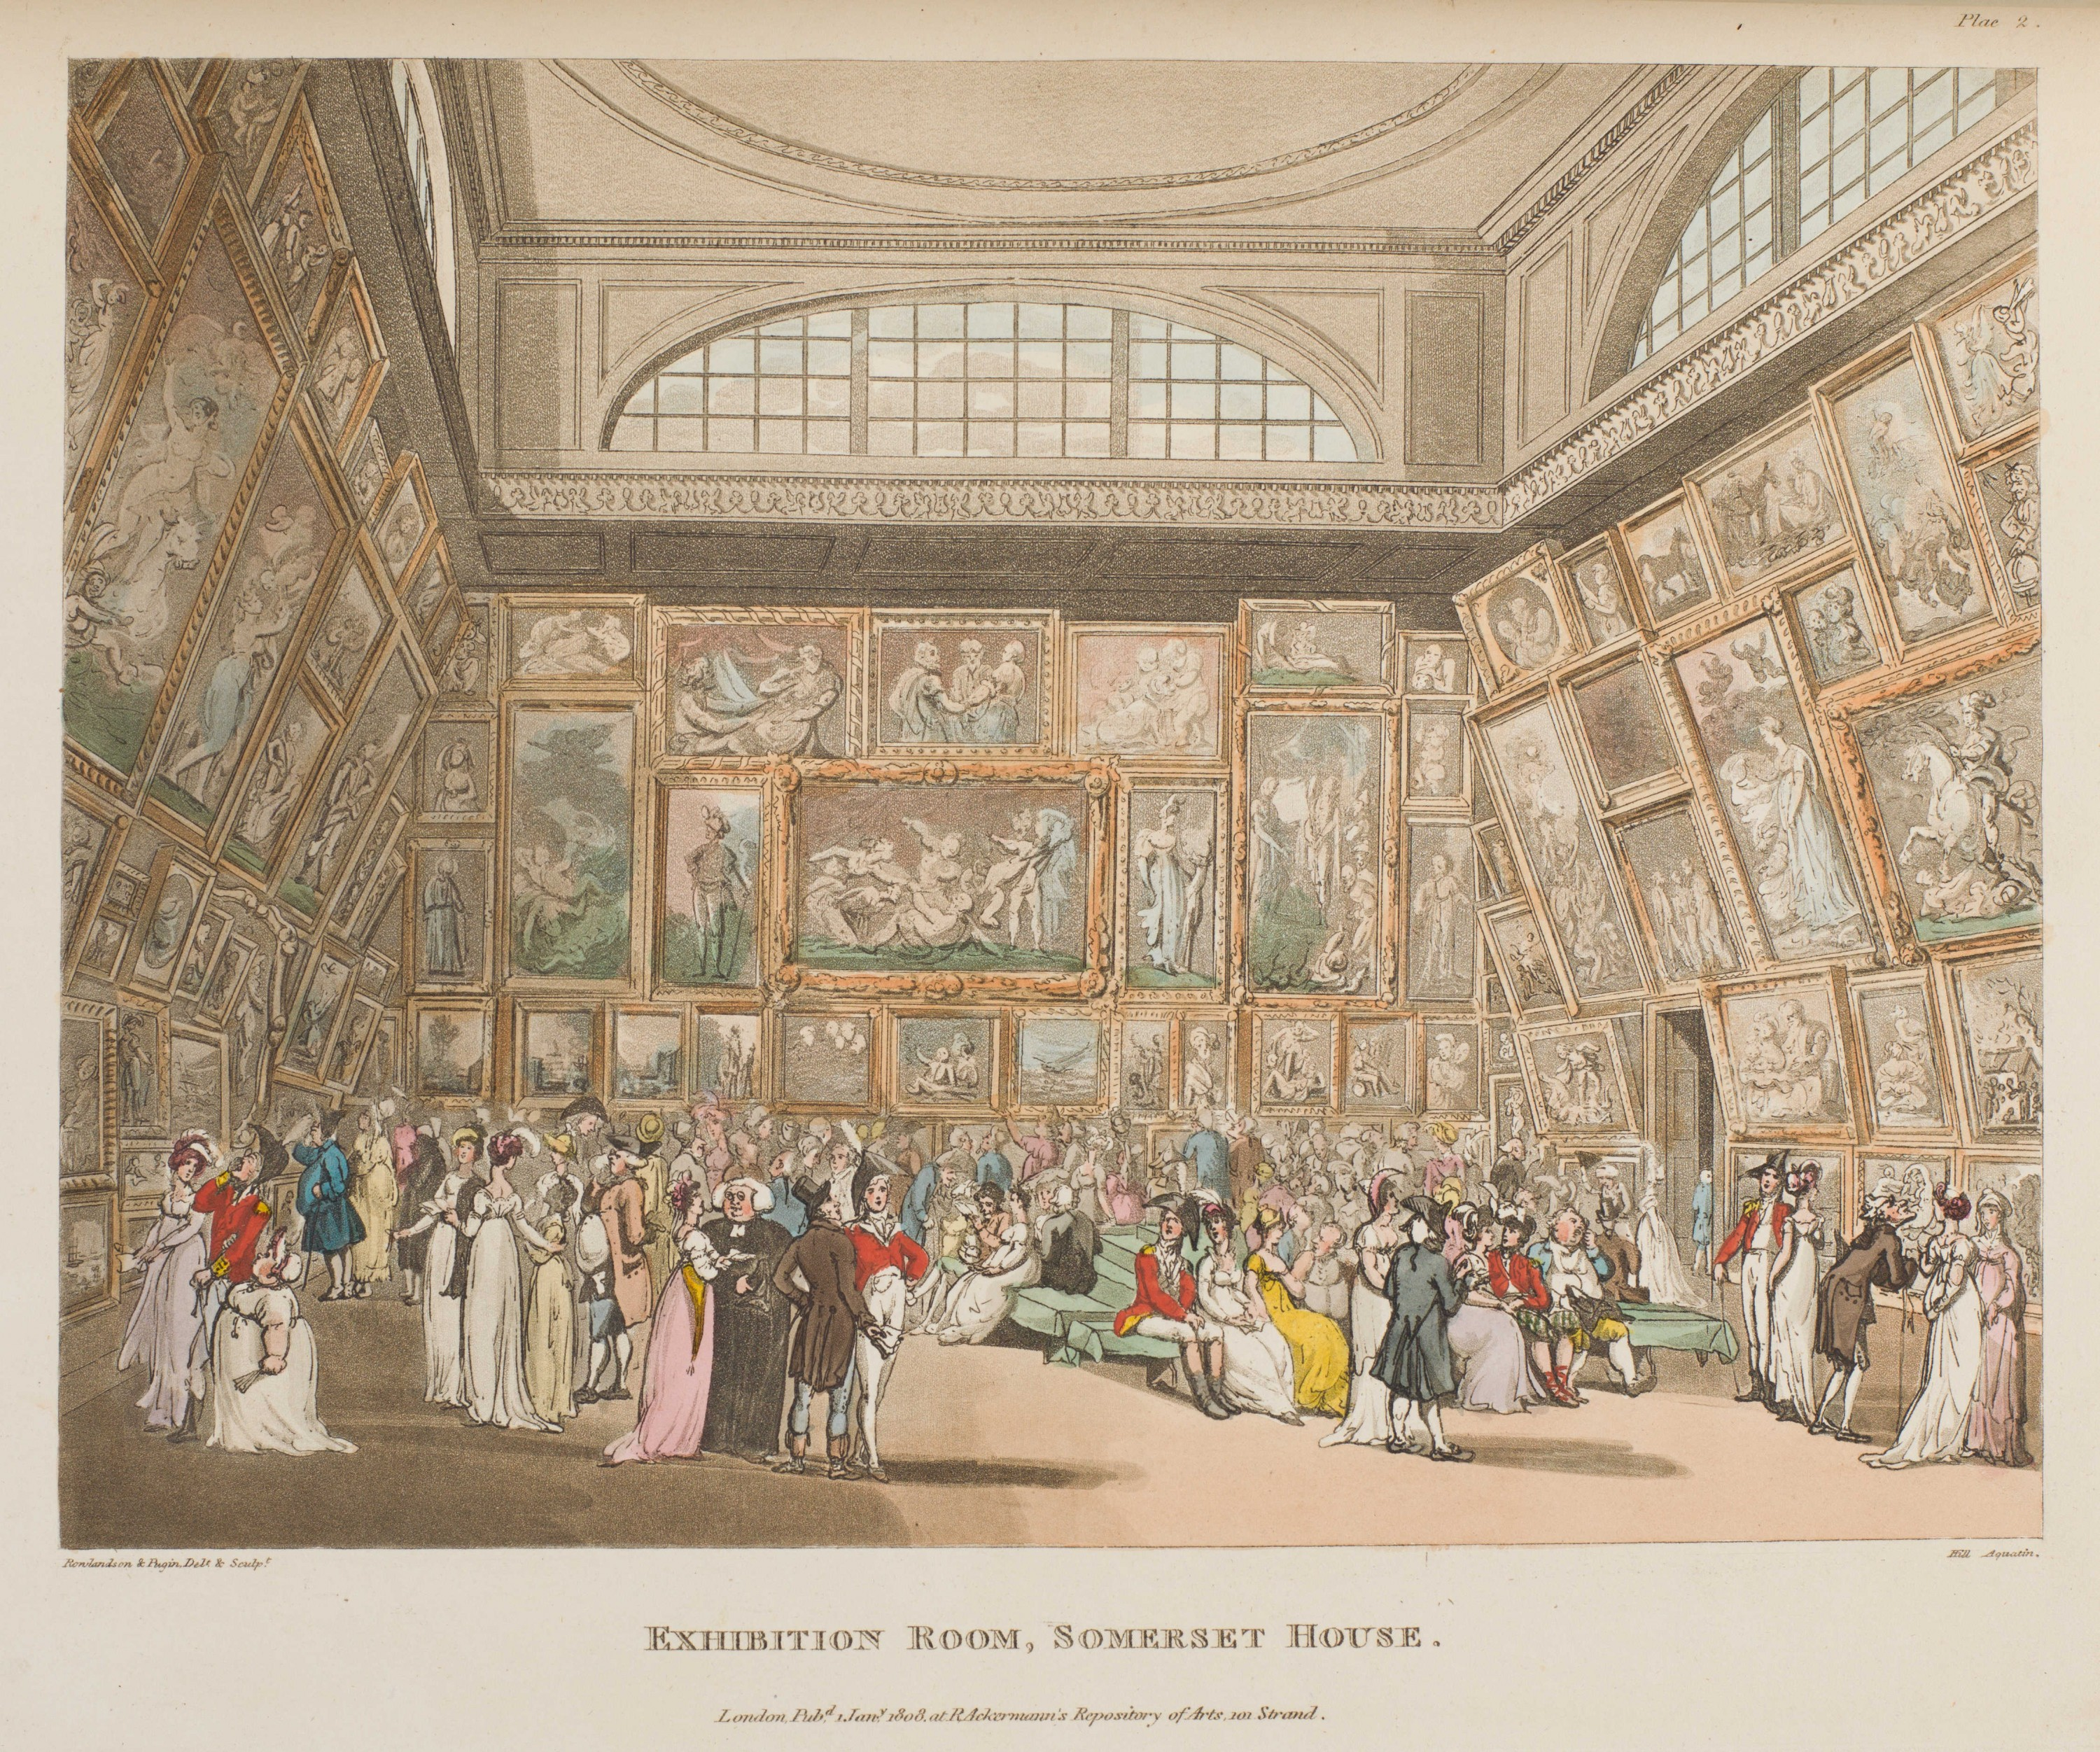 002 - Exhibition Room, Somerset House